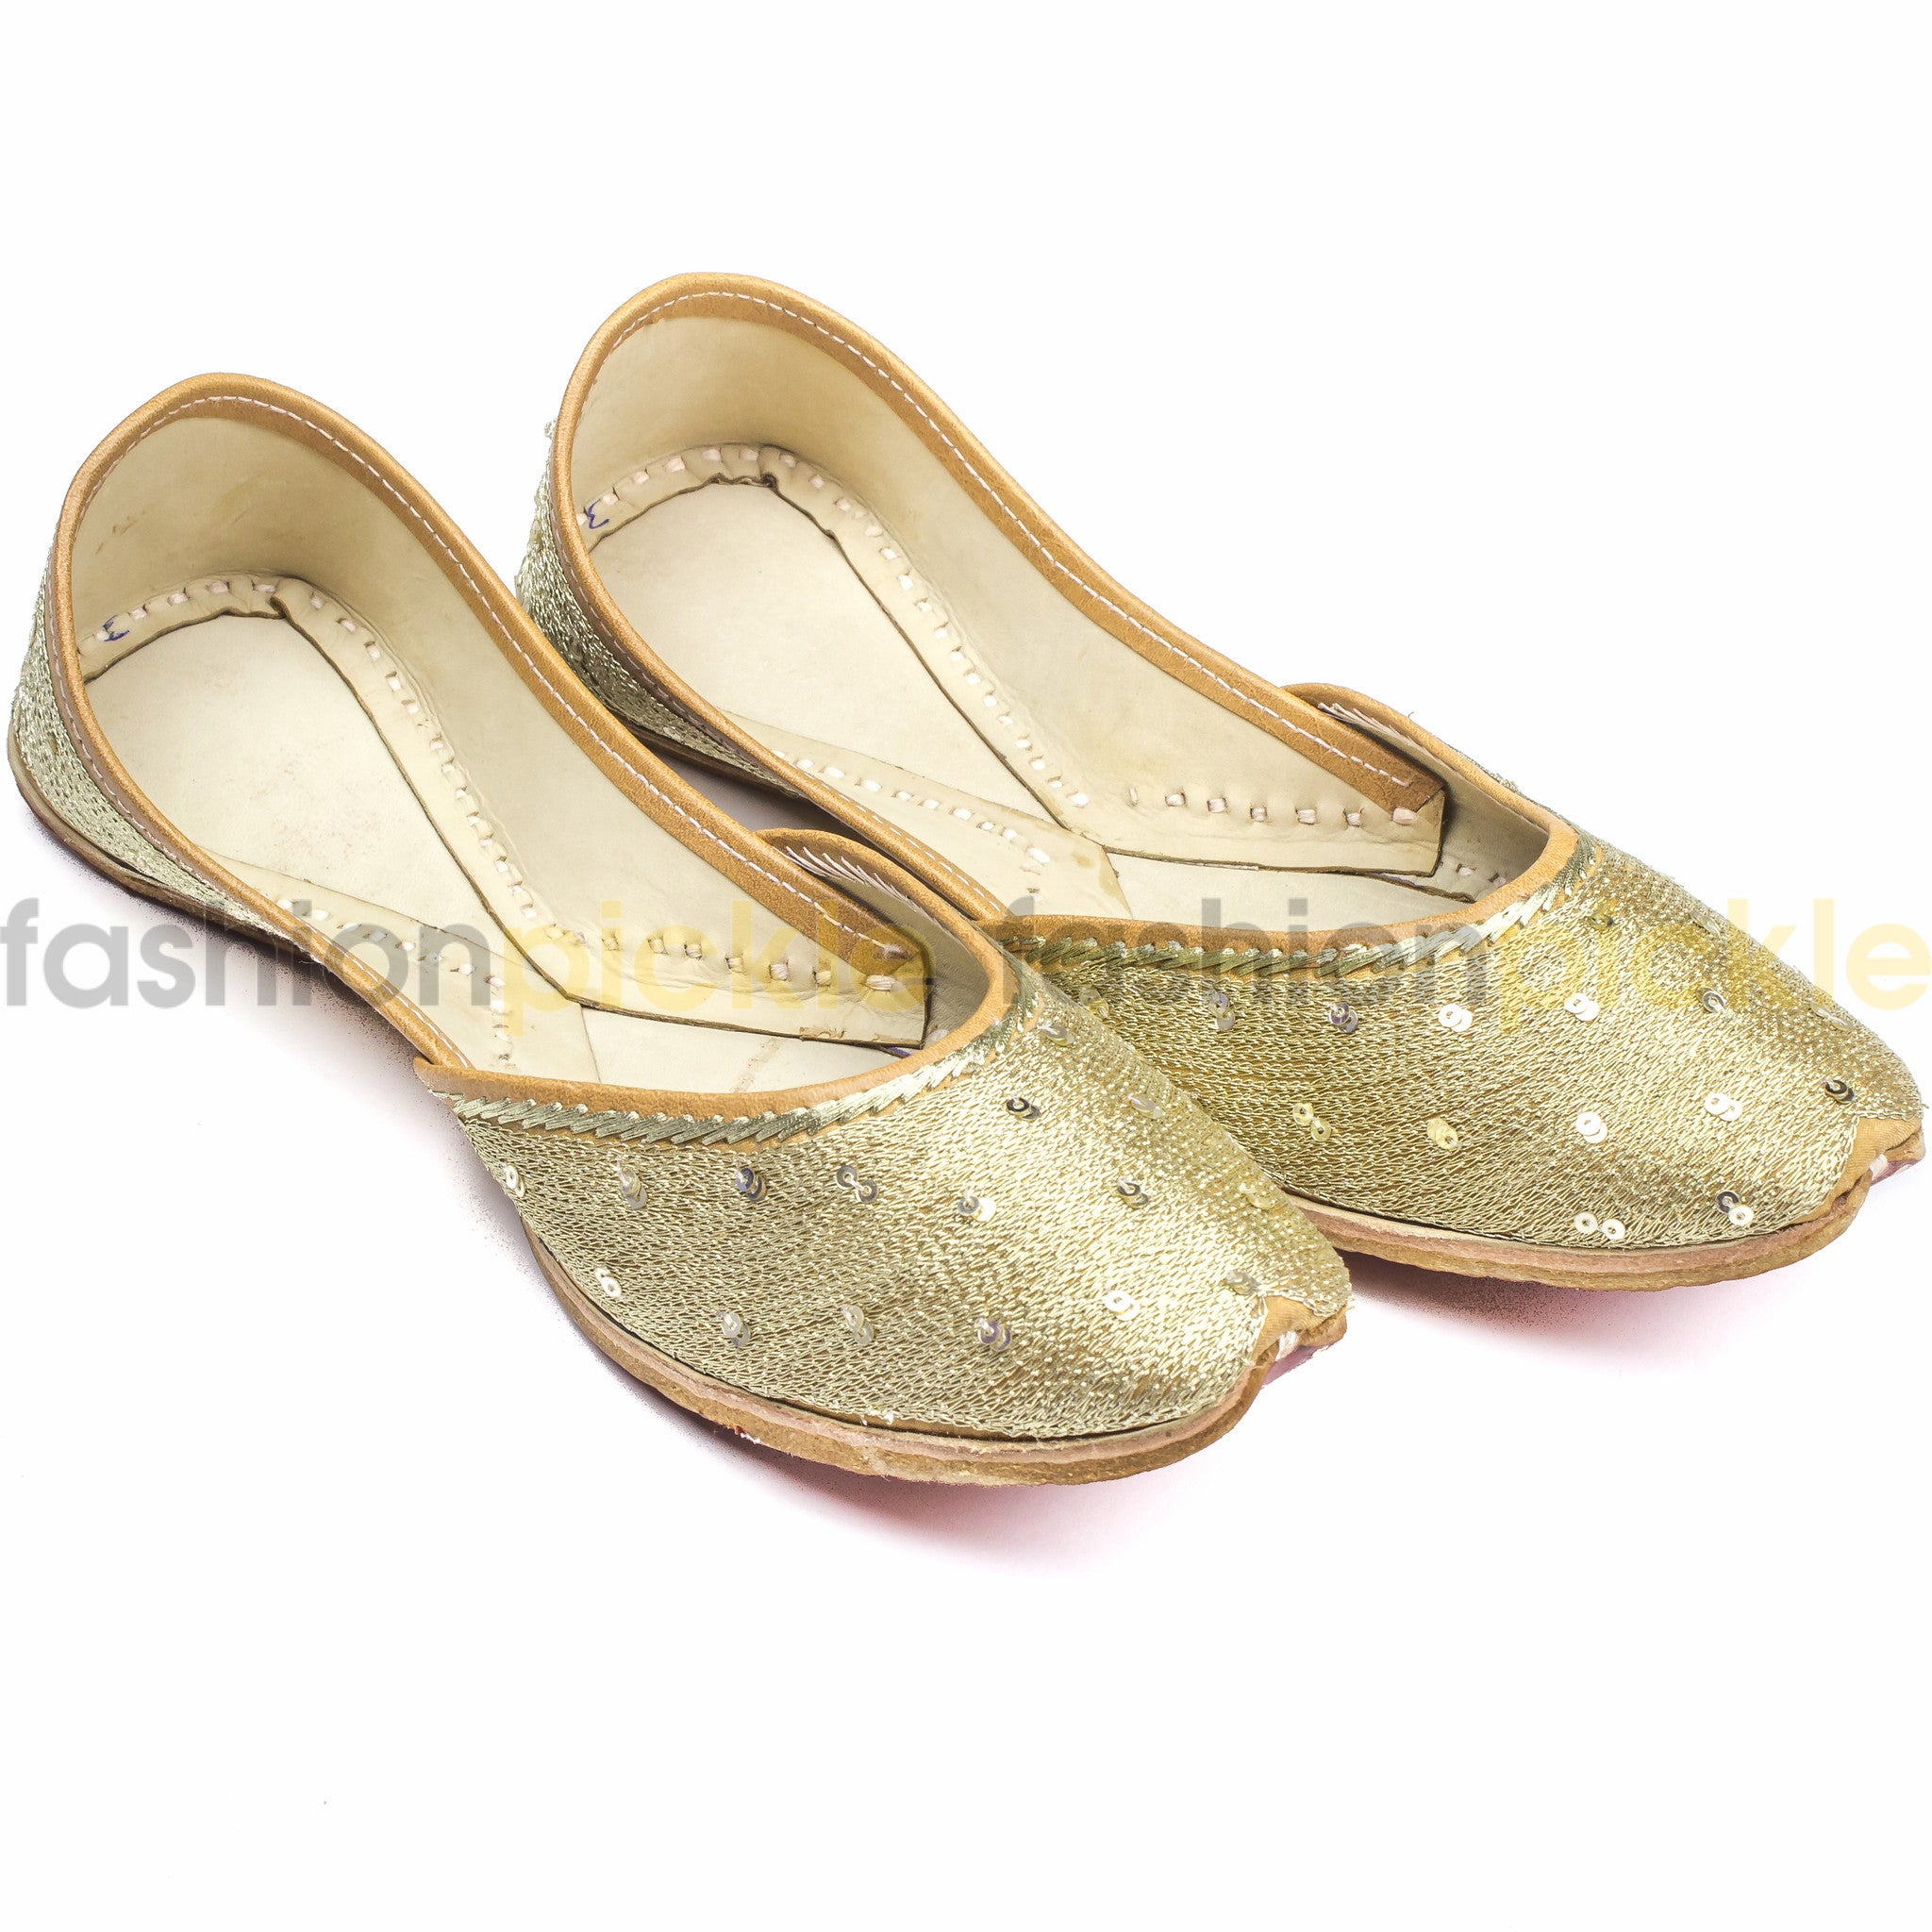 choo day shoes happy comforter vivah jimmy comfortable for big wedding fwd bridal feet tips the